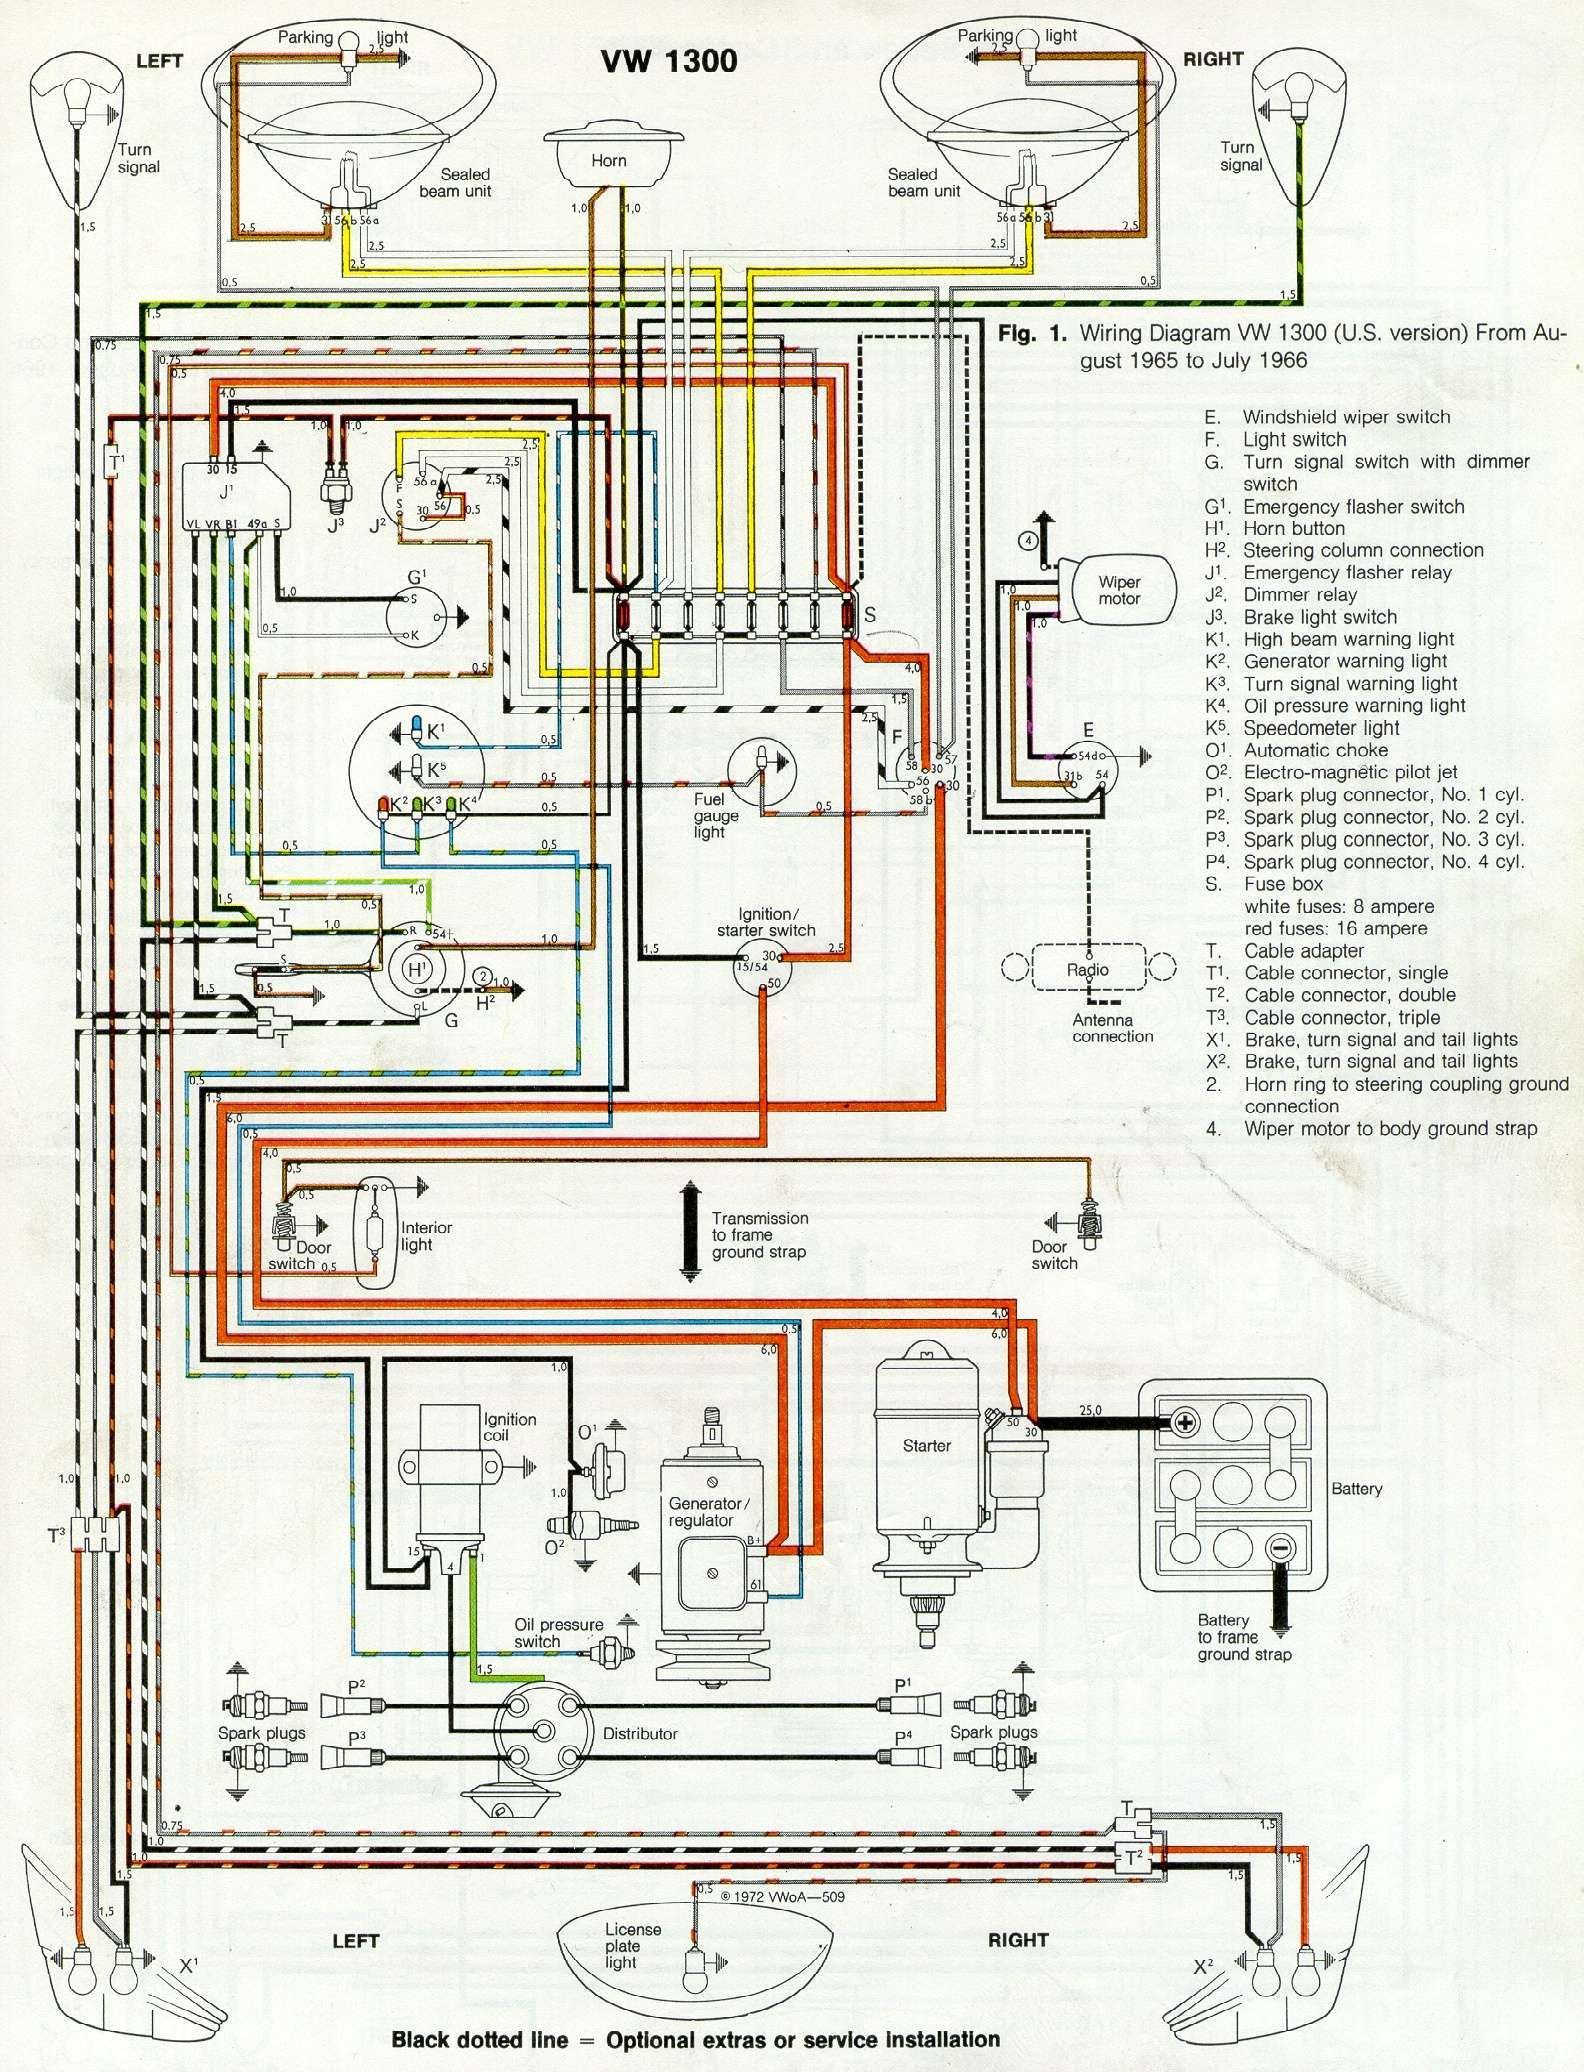 Thesamba Com Type 1 Wiring Diagrams With 1969 Vw Beetle Diagram Vw Beetles Vw Beetle Classic Beetle